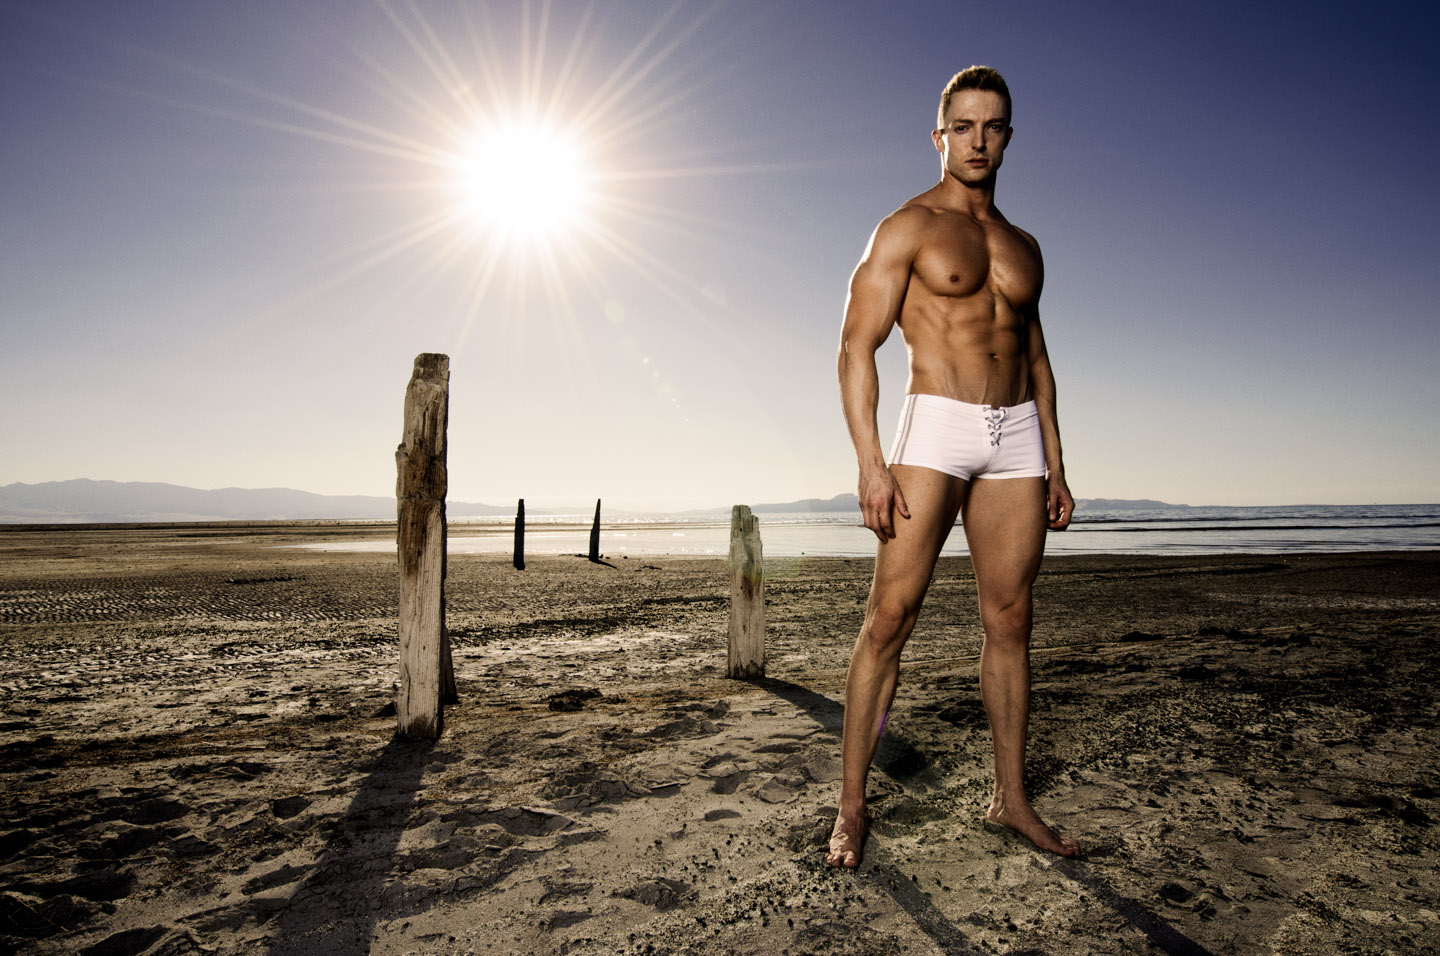 White swimwear on the beach of the great salt lake